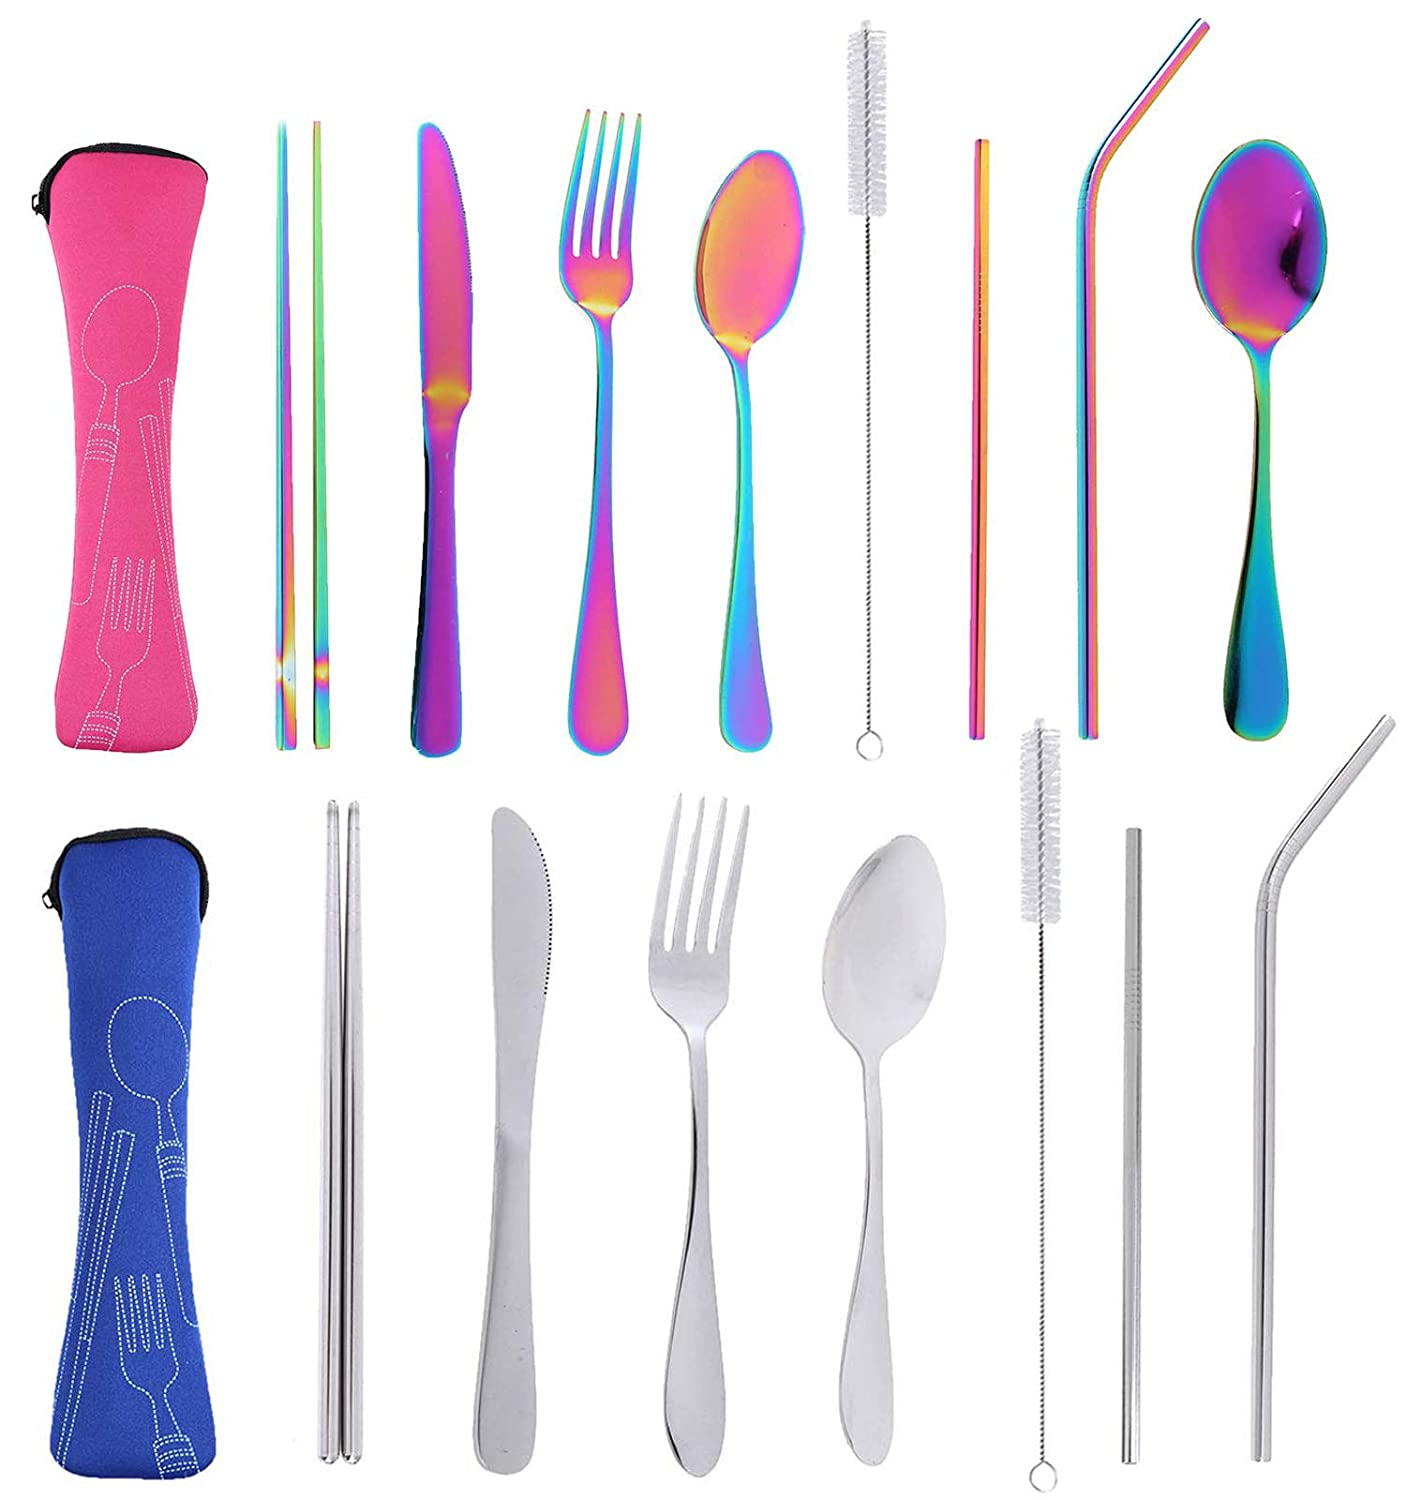 17pcs Reusable Travel Utensils Cutlery Silverware Set with Case, Stainless Steel Portable Flatware Set for Camping Office Or School Lunch,Dishwasher Safe Cutlery Knife Fork Spoon Straws Set(Rose+Blue)